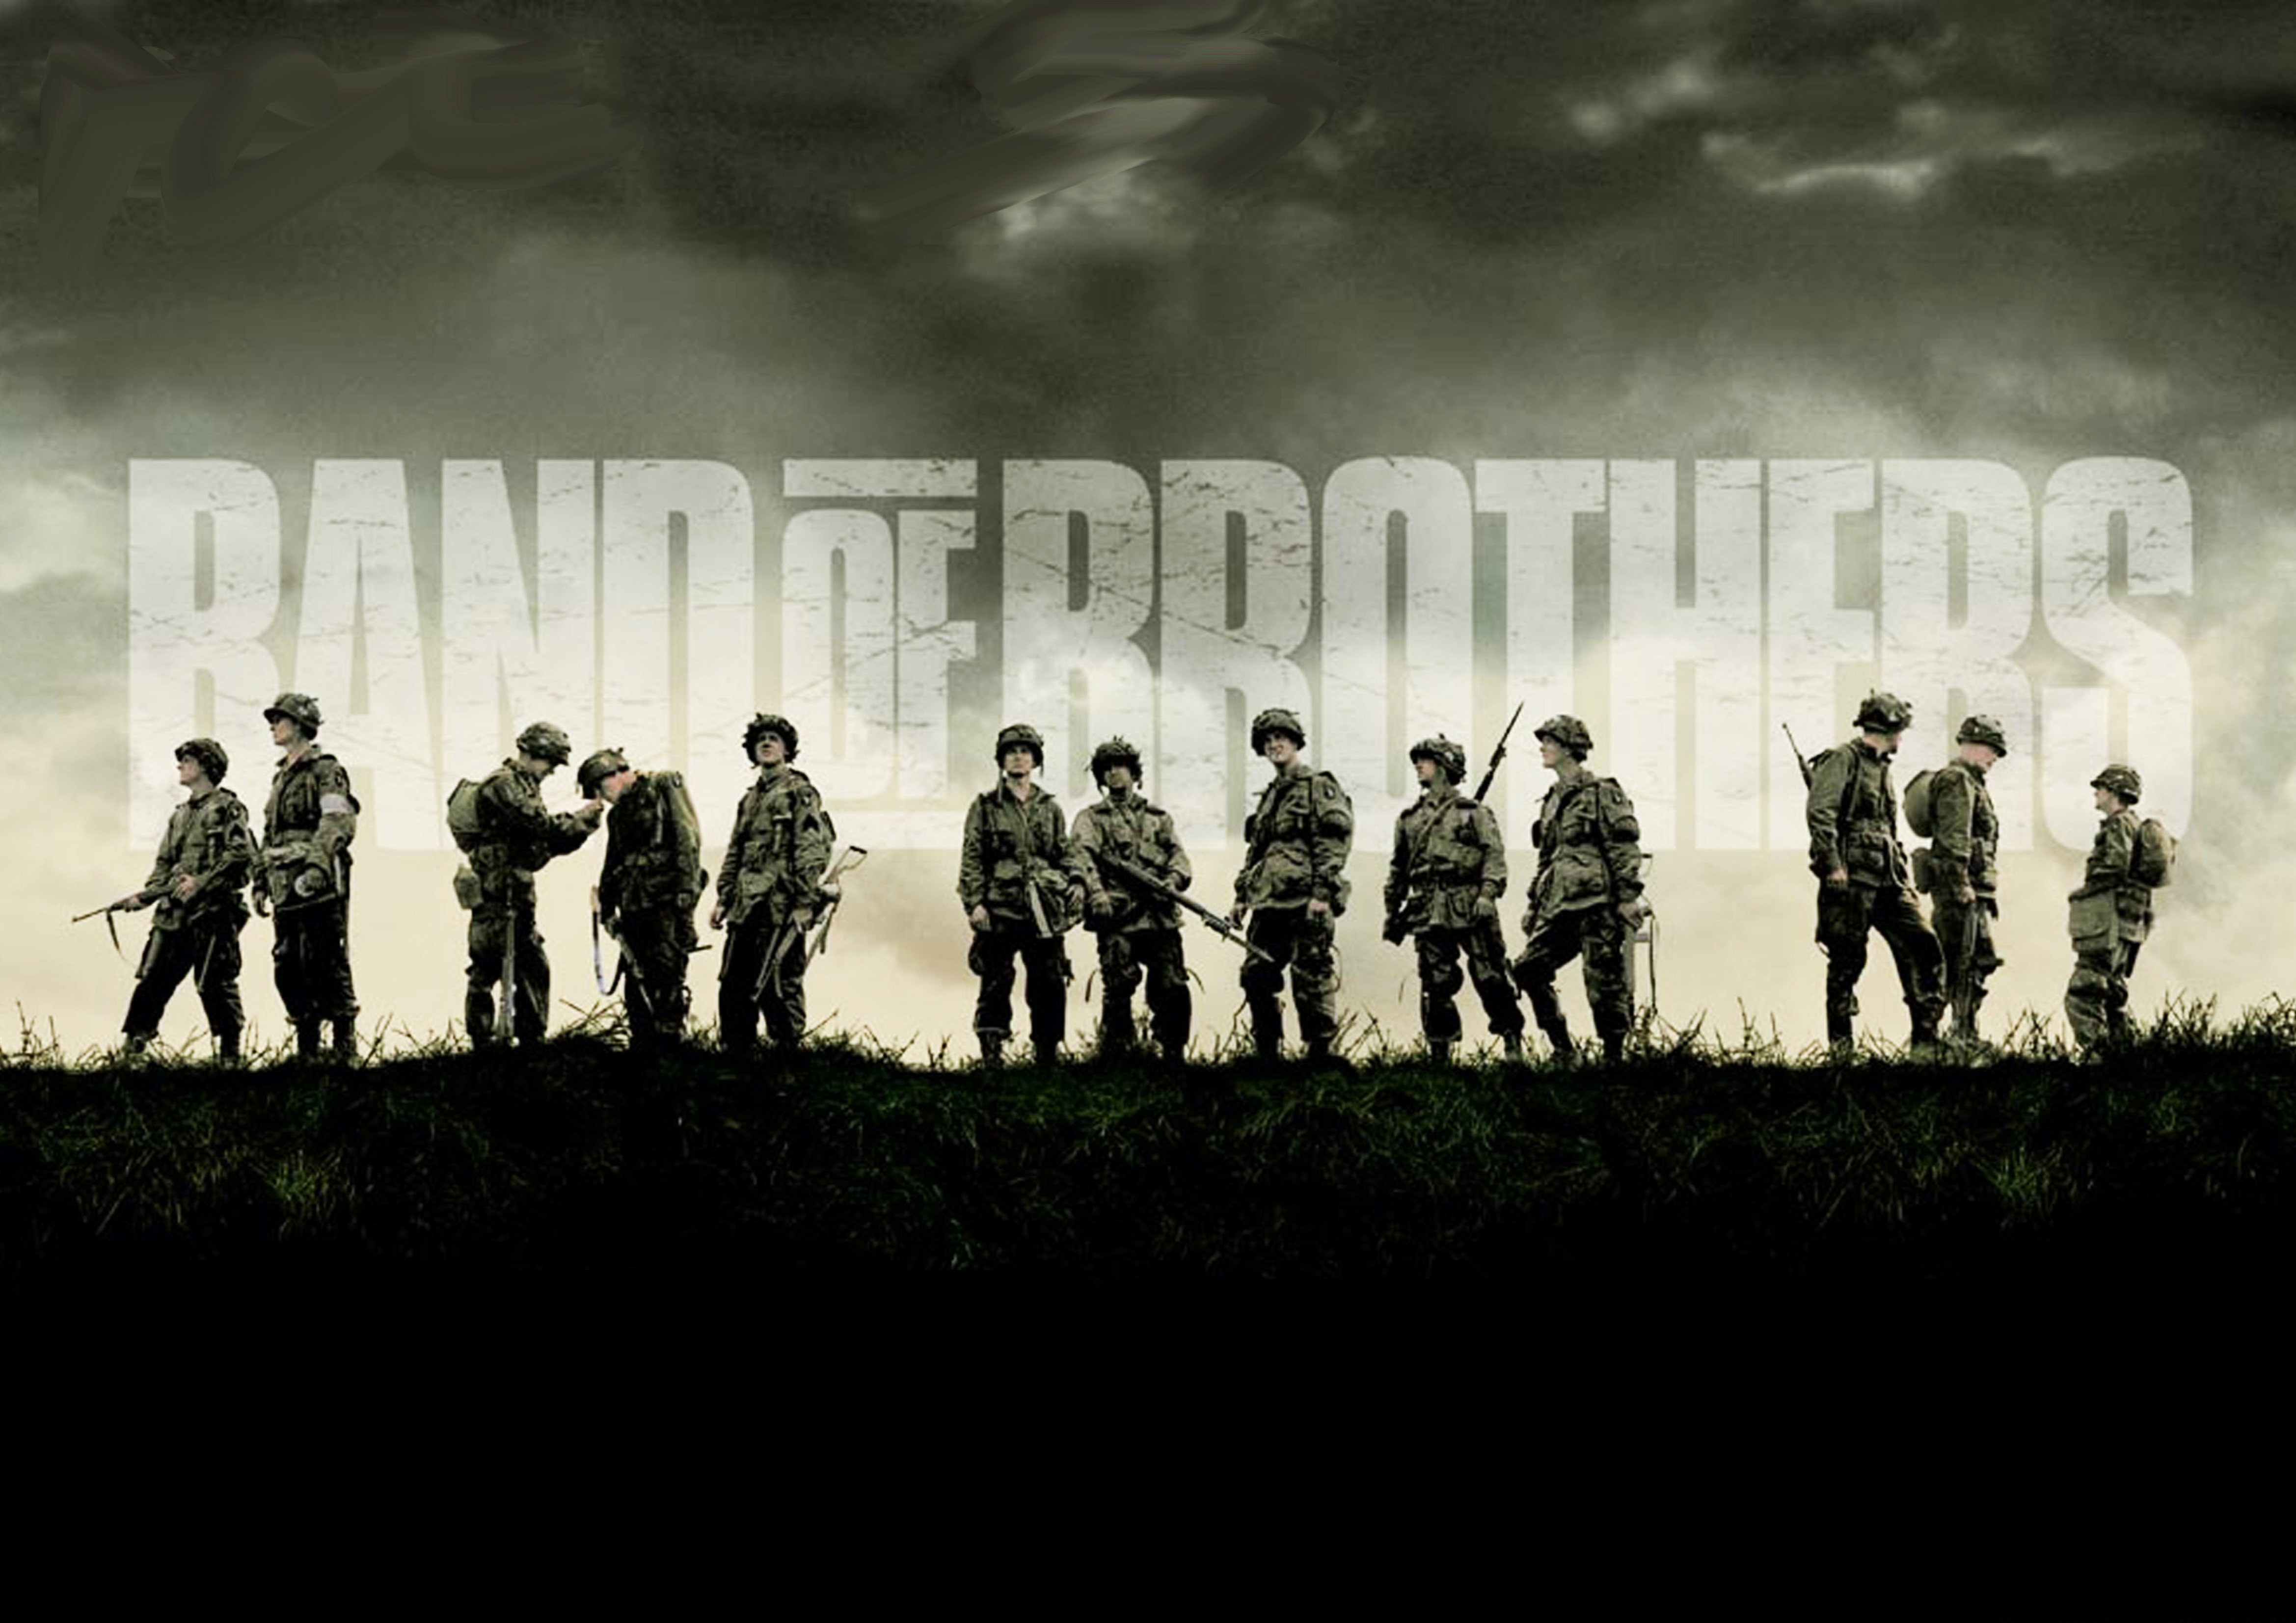 bands of brother Come experience the sound of the band of brothers please join us at our next event 210 tavern.